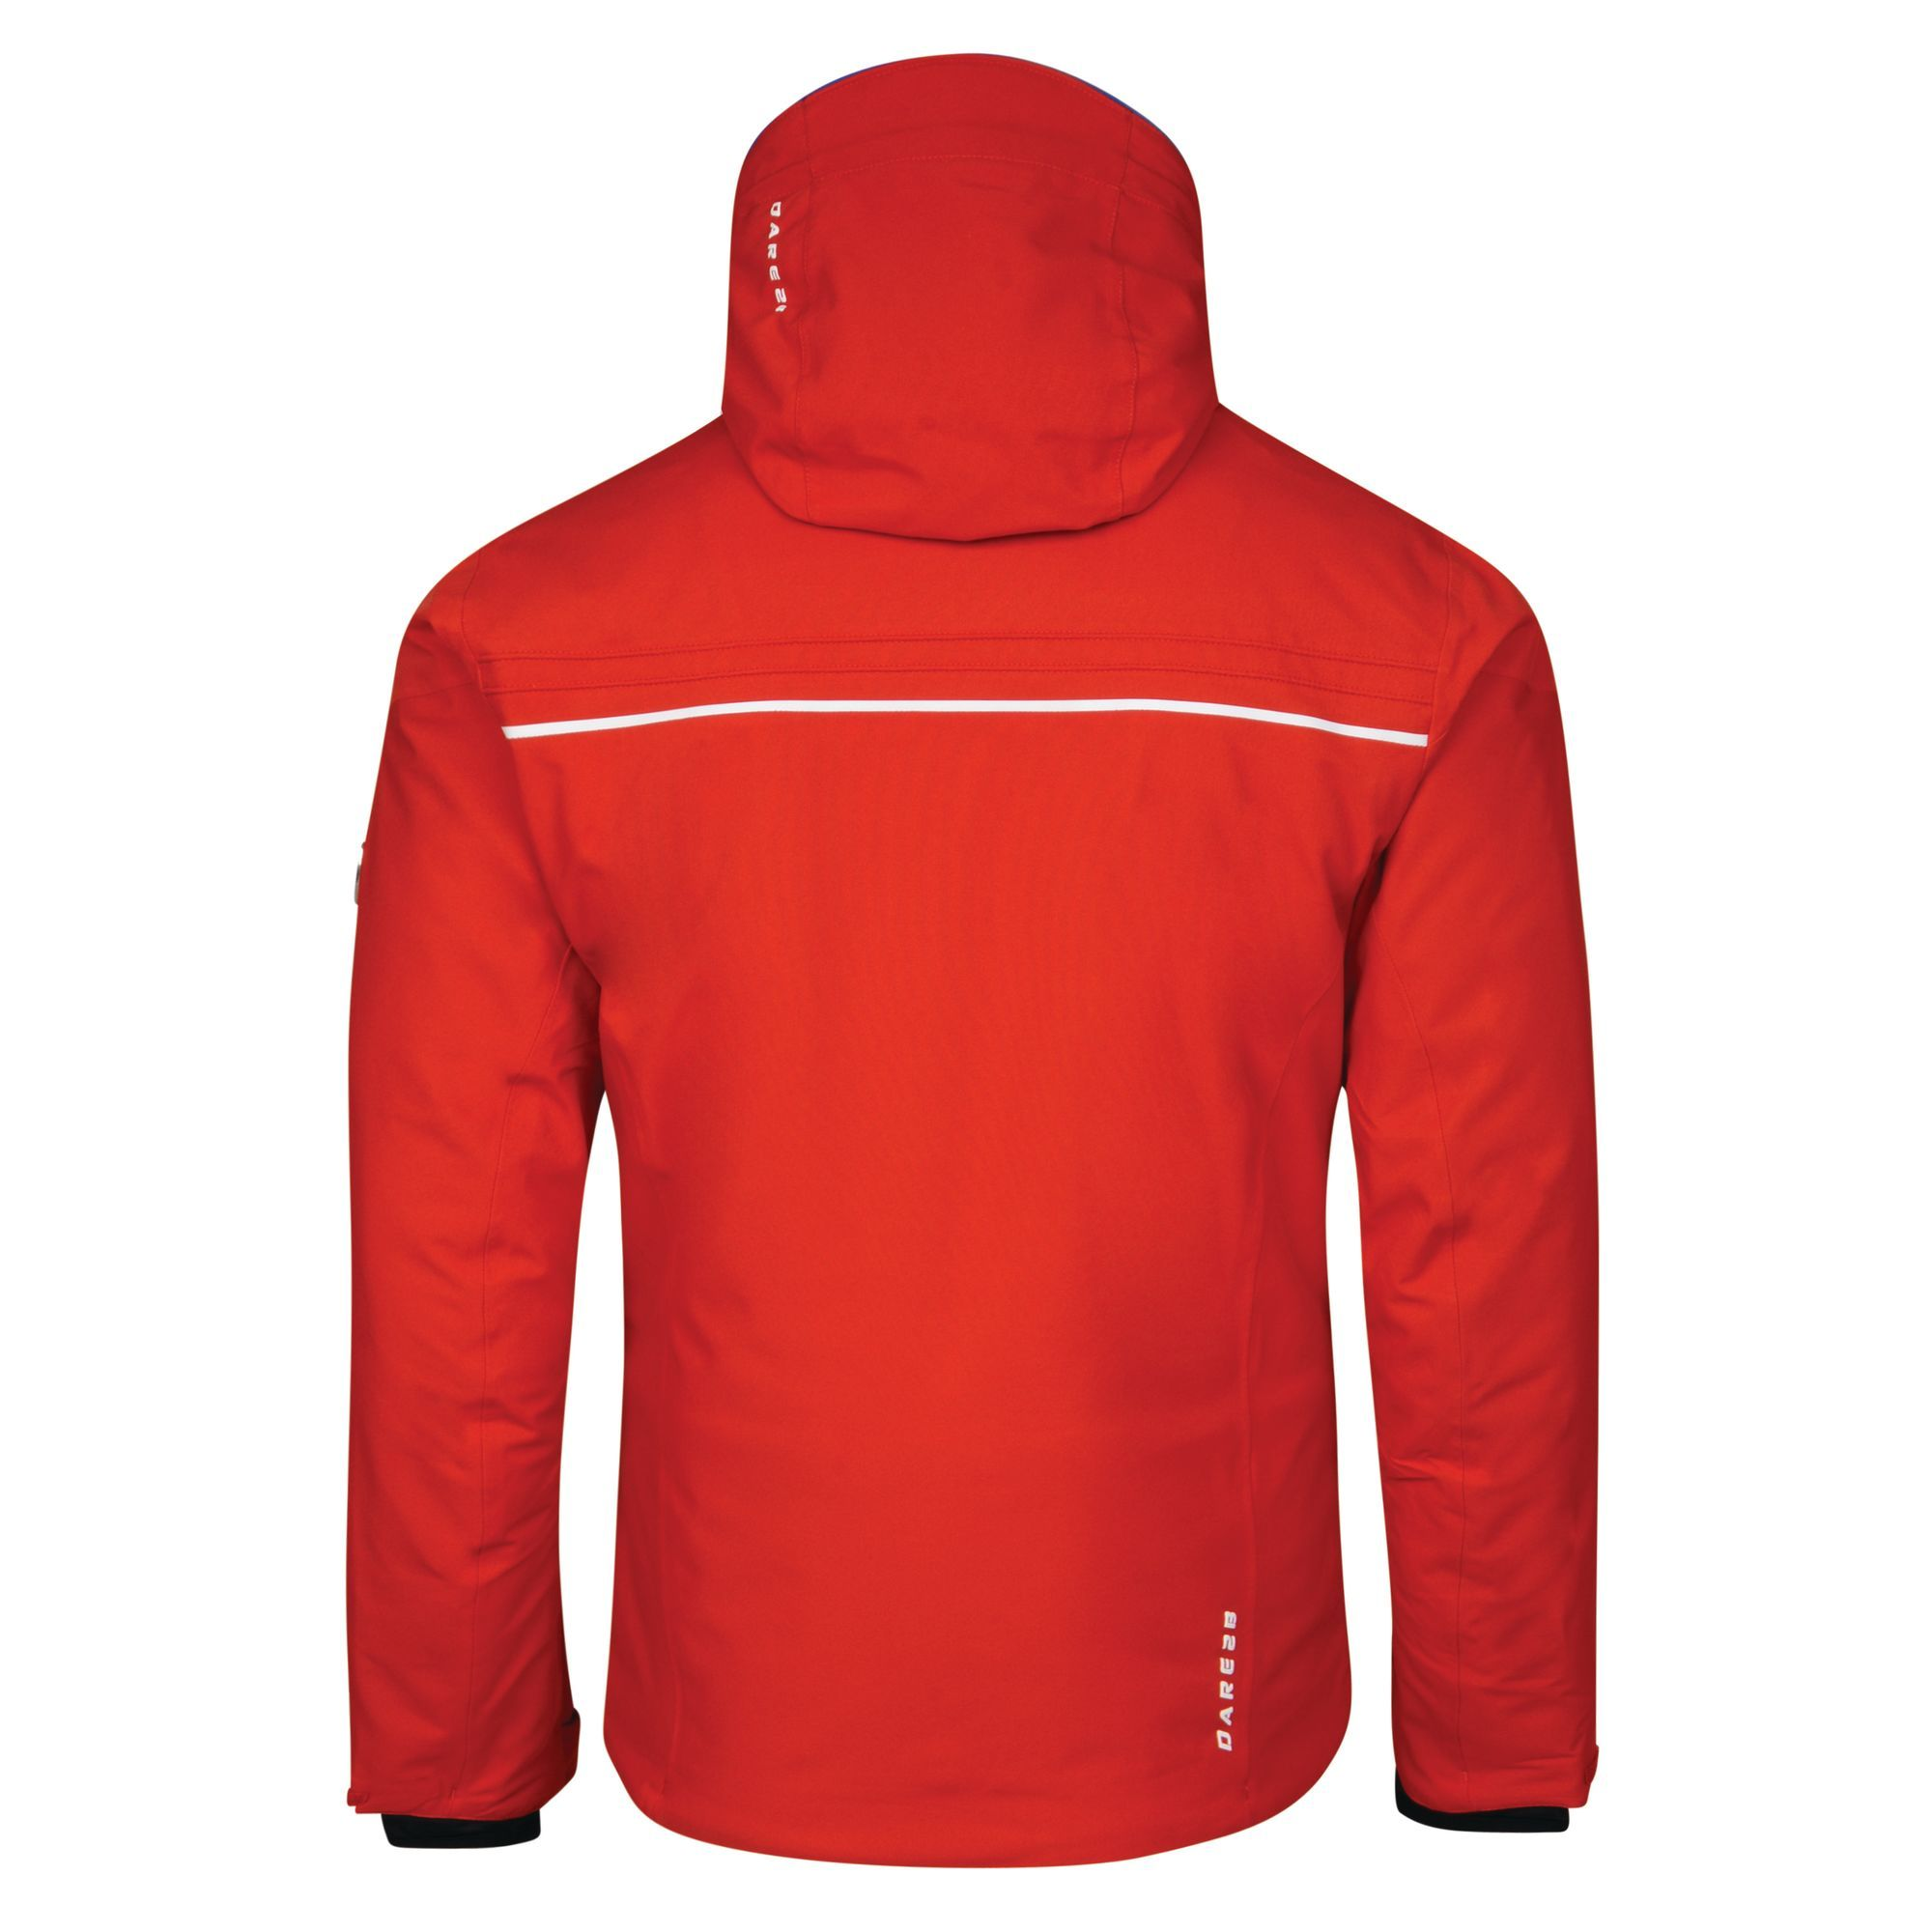 Dare2b-Mens-Waterproof-Breathable-Ski-Jacket-Huge-Clearance-RRP-200 thumbnail 25